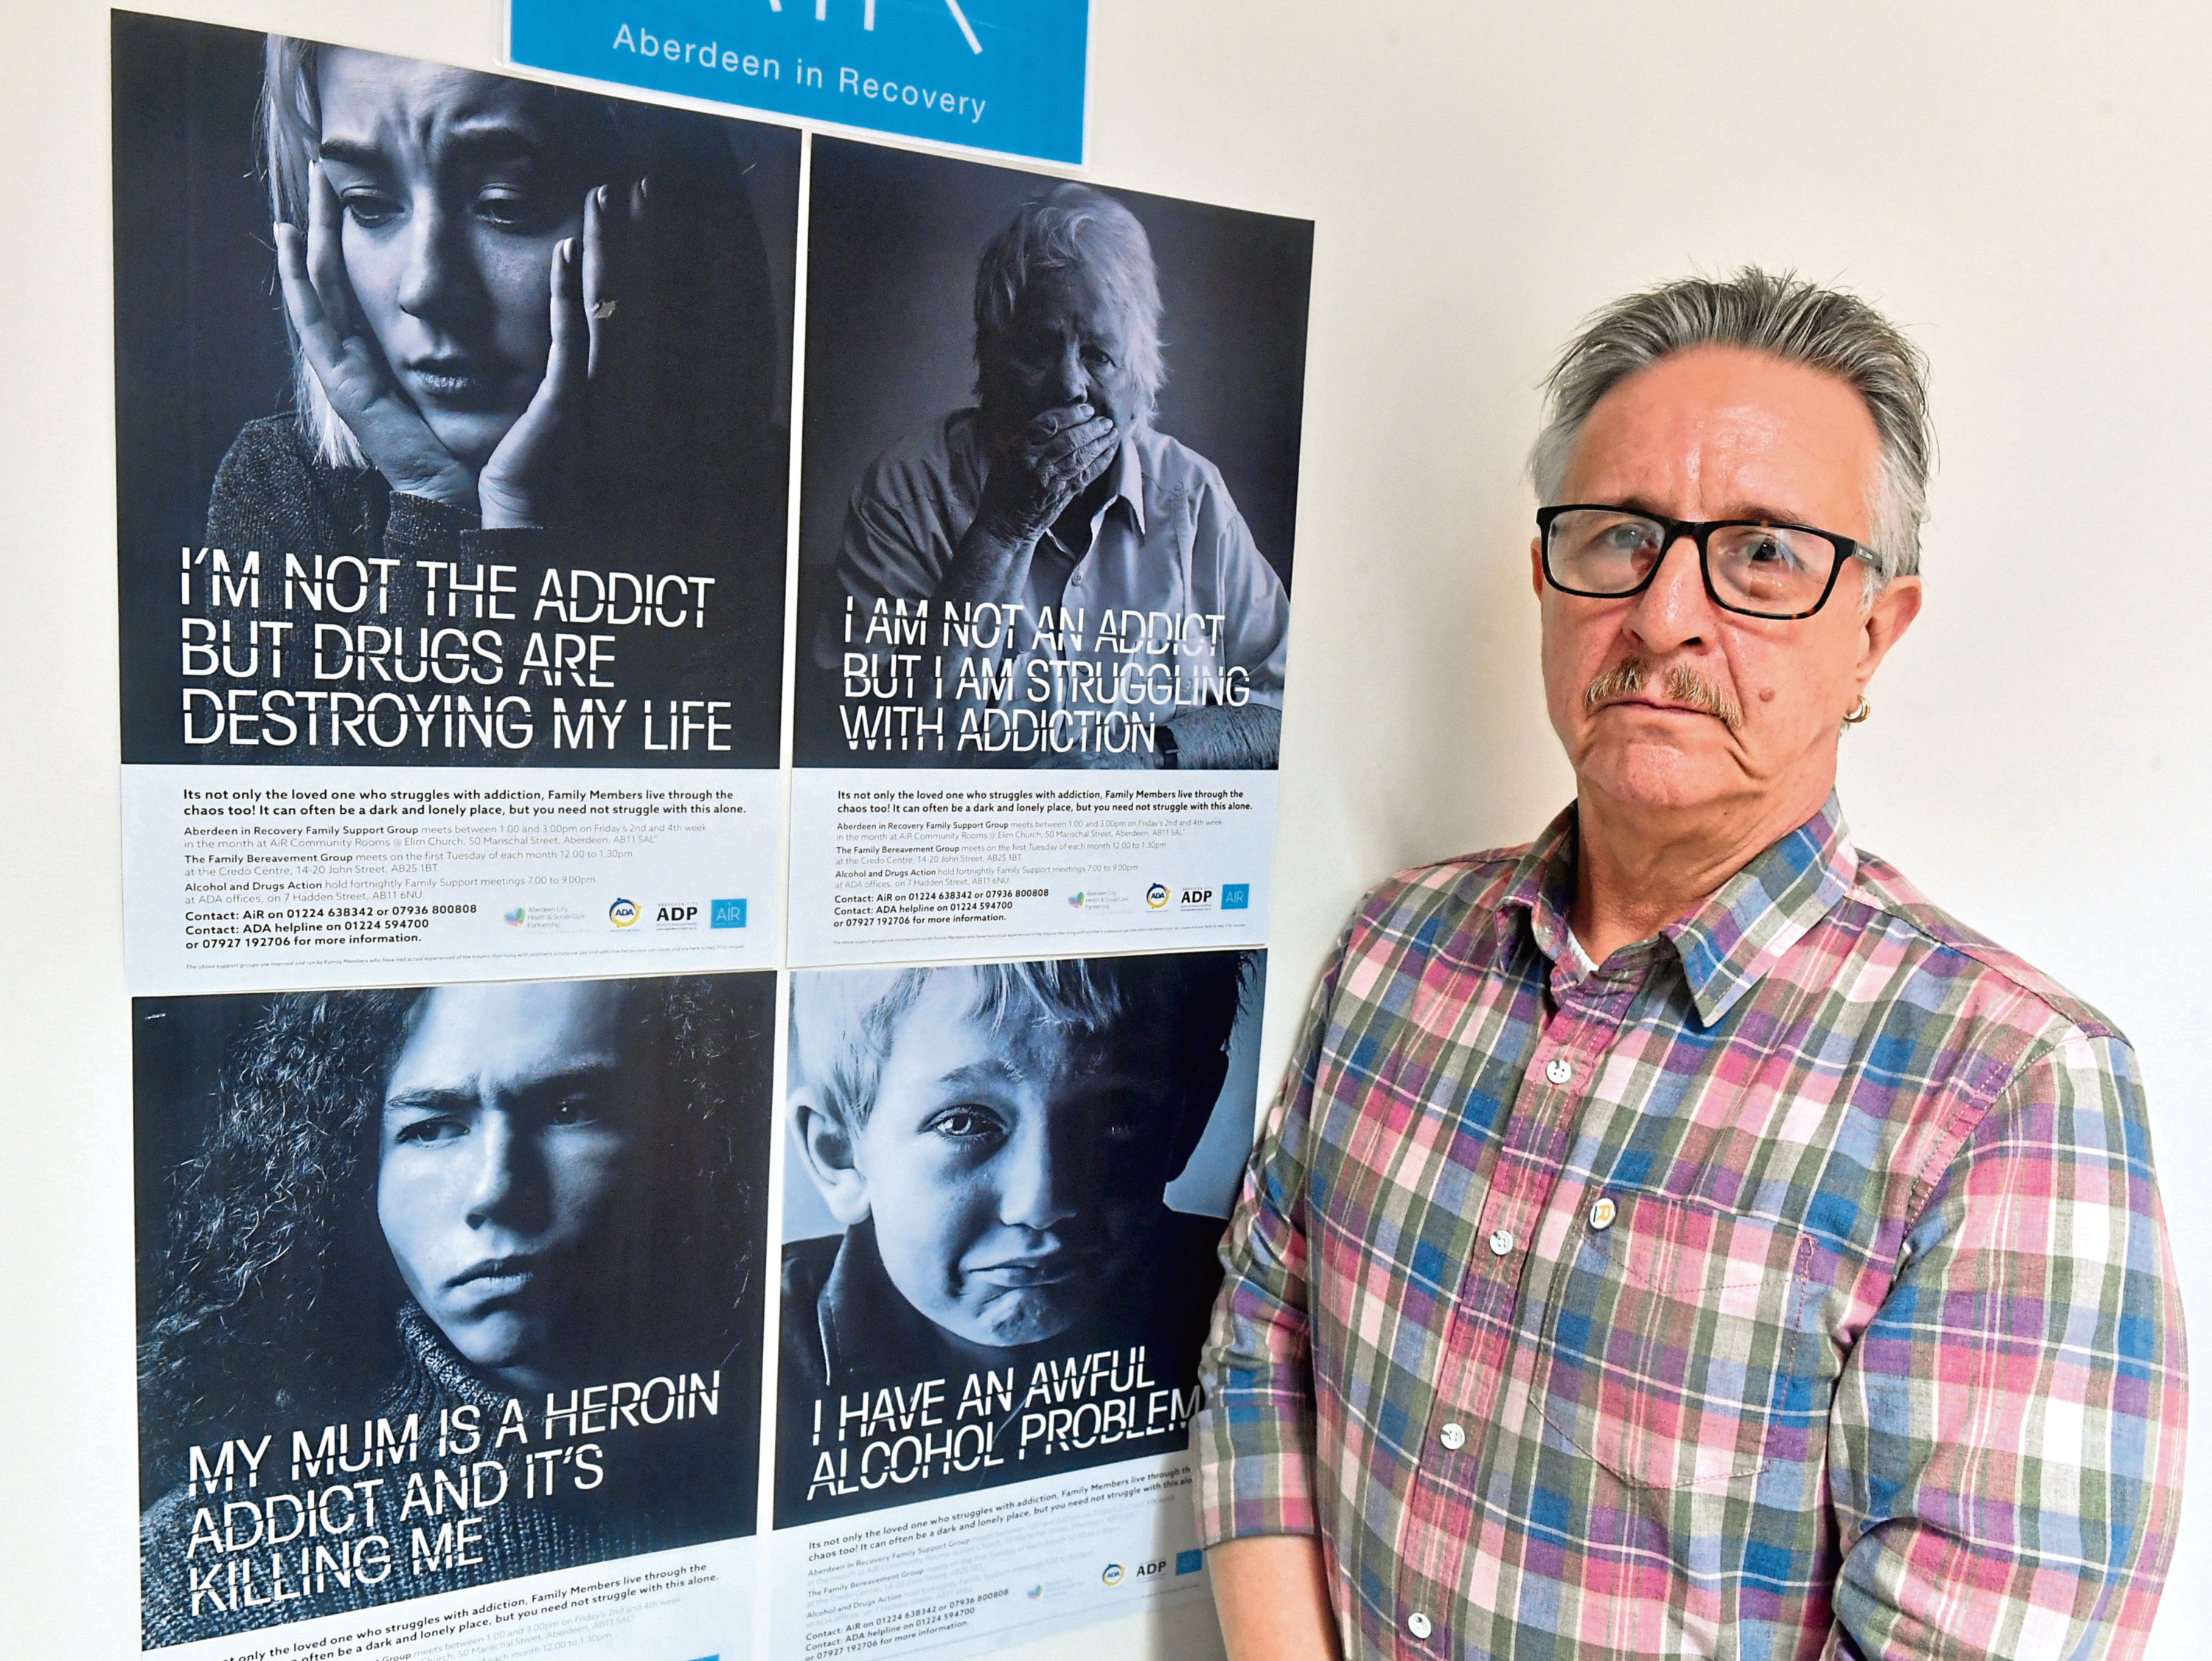 Aberdeen In Recovery community manager Dermot Craig backs a plan to provide safe injection rooms in the city Picture by Chris Sumner